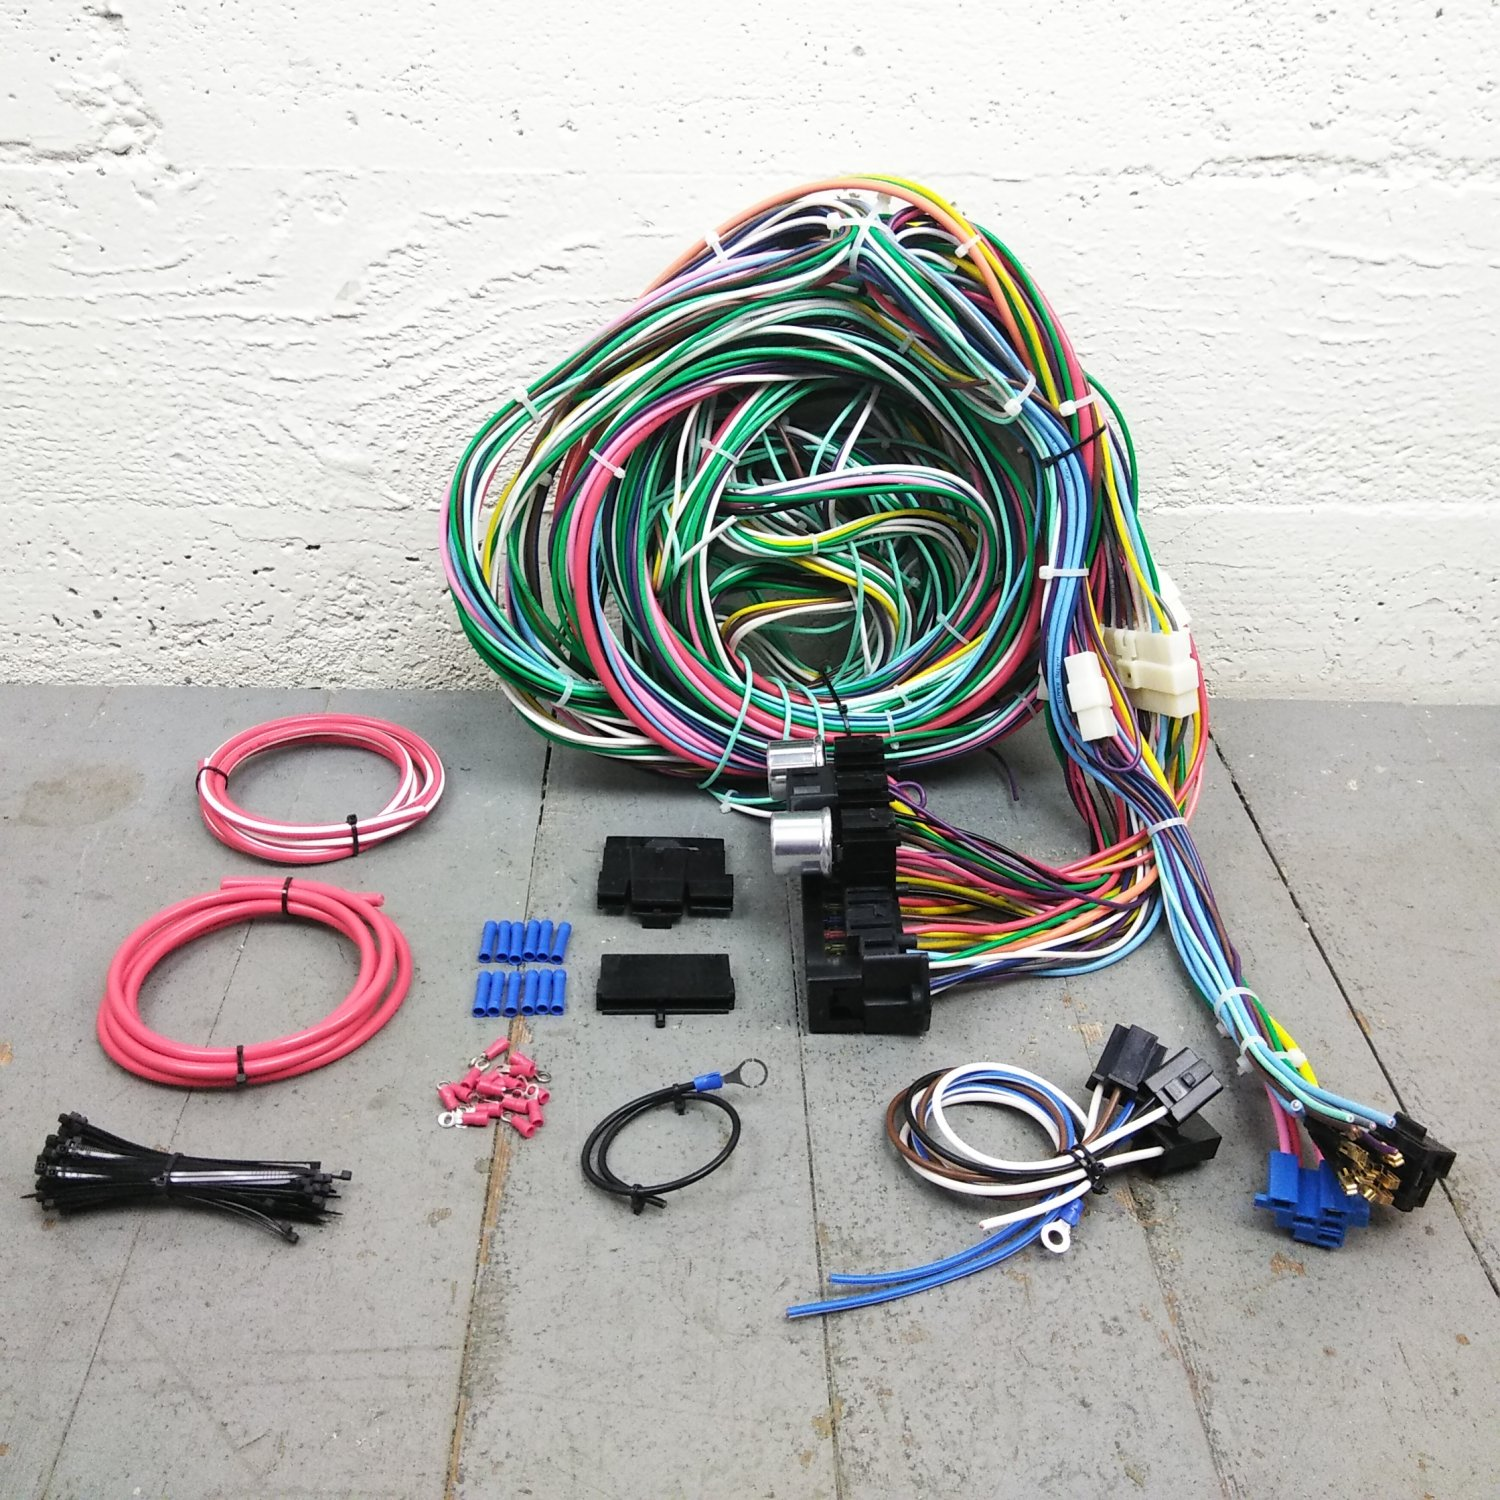 1964 - 1966 Ford Mustang Wire Harness Upgrade Kit fits painless compact new  KIC. Bar_Product_Description_C